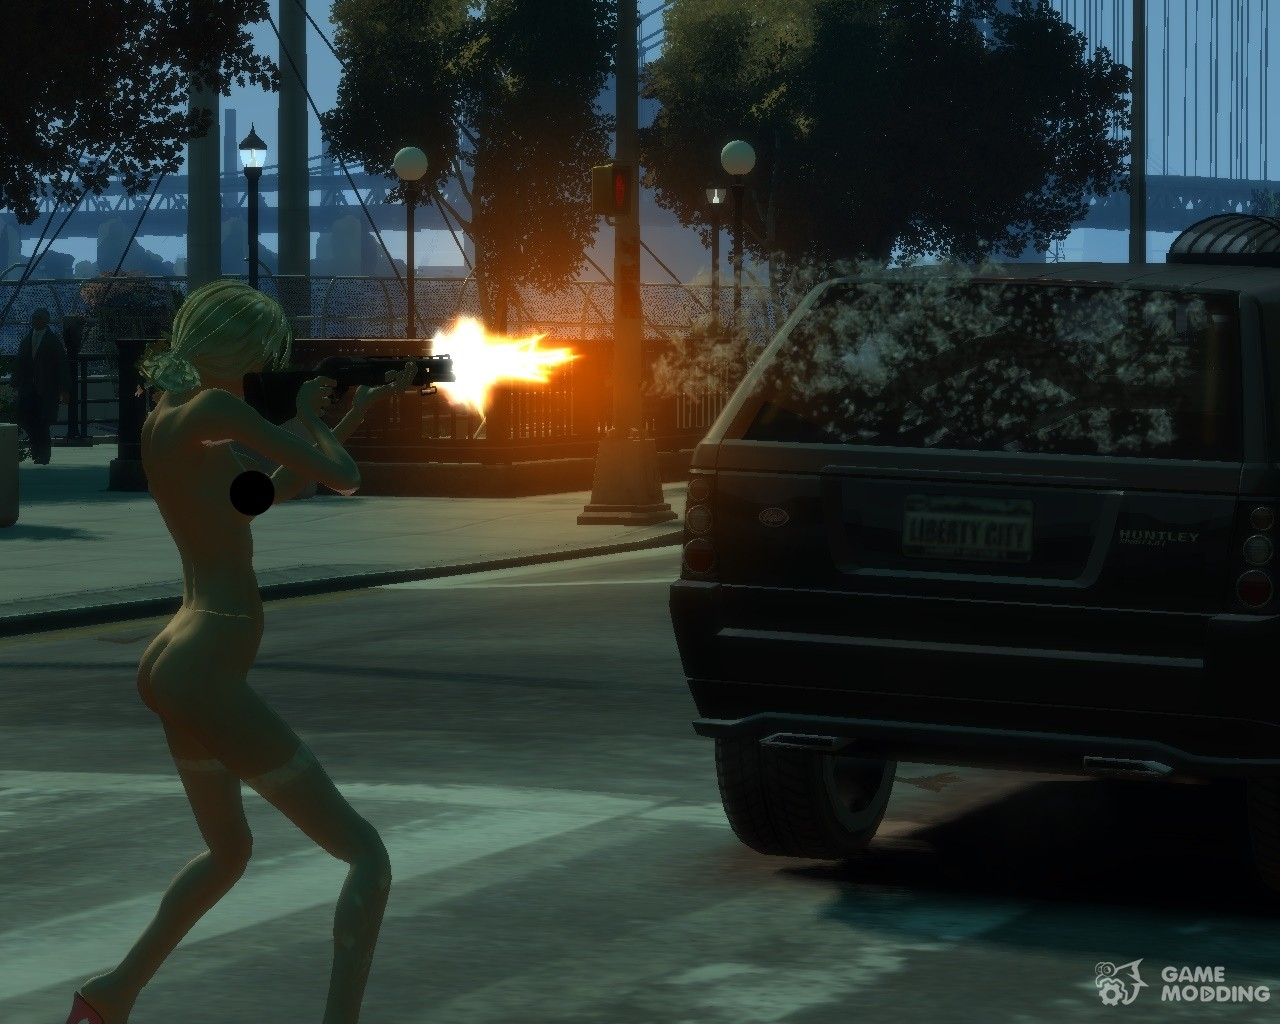 Grand theft auto naked girs